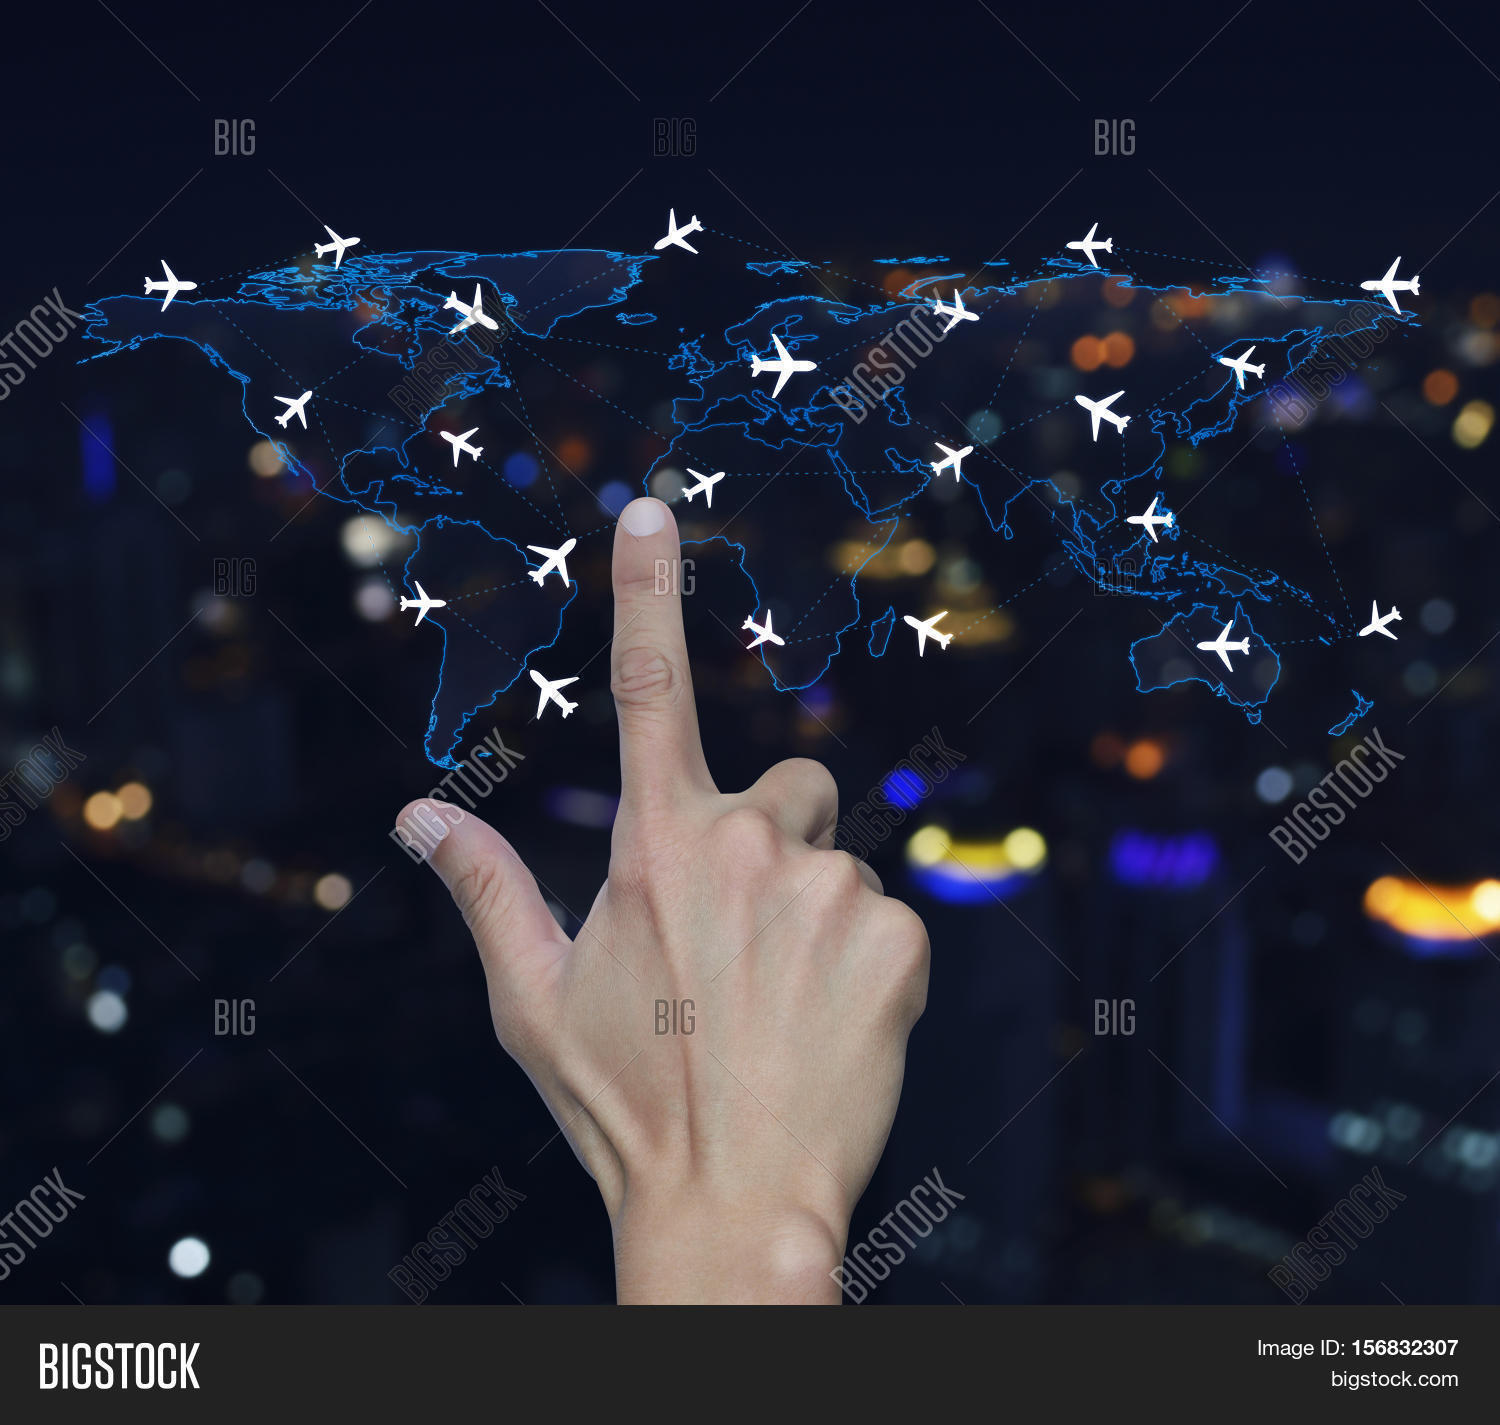 Imagen y foto hand pressing light blue world map bigstock hand pressing light blue world map with flight routes airplanes over blurred night city tower background gumiabroncs Gallery